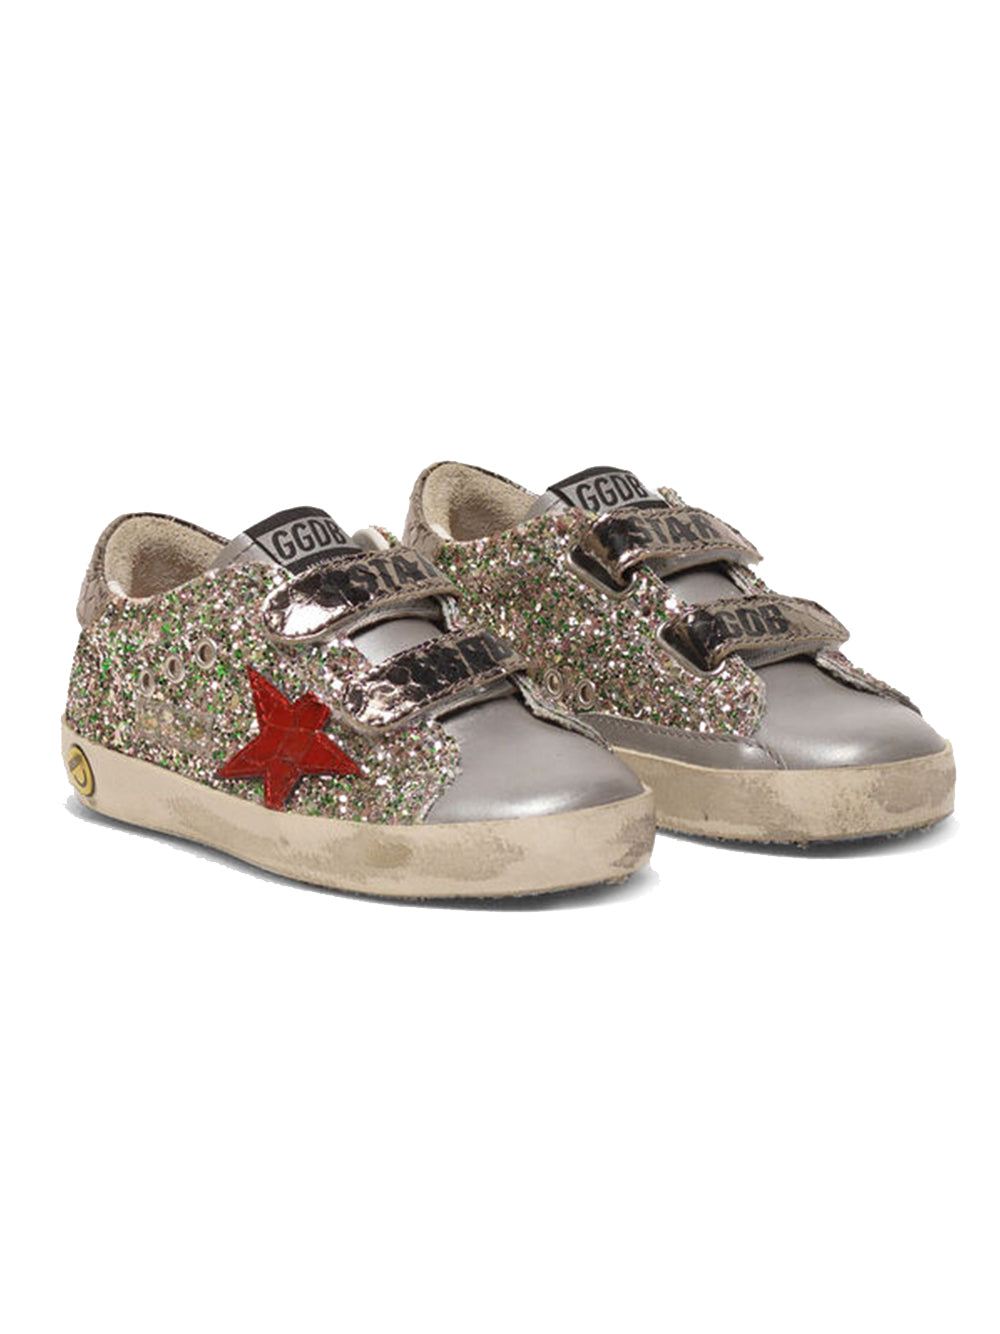 Kid's Old School Sneakers with Glitter and Red Star